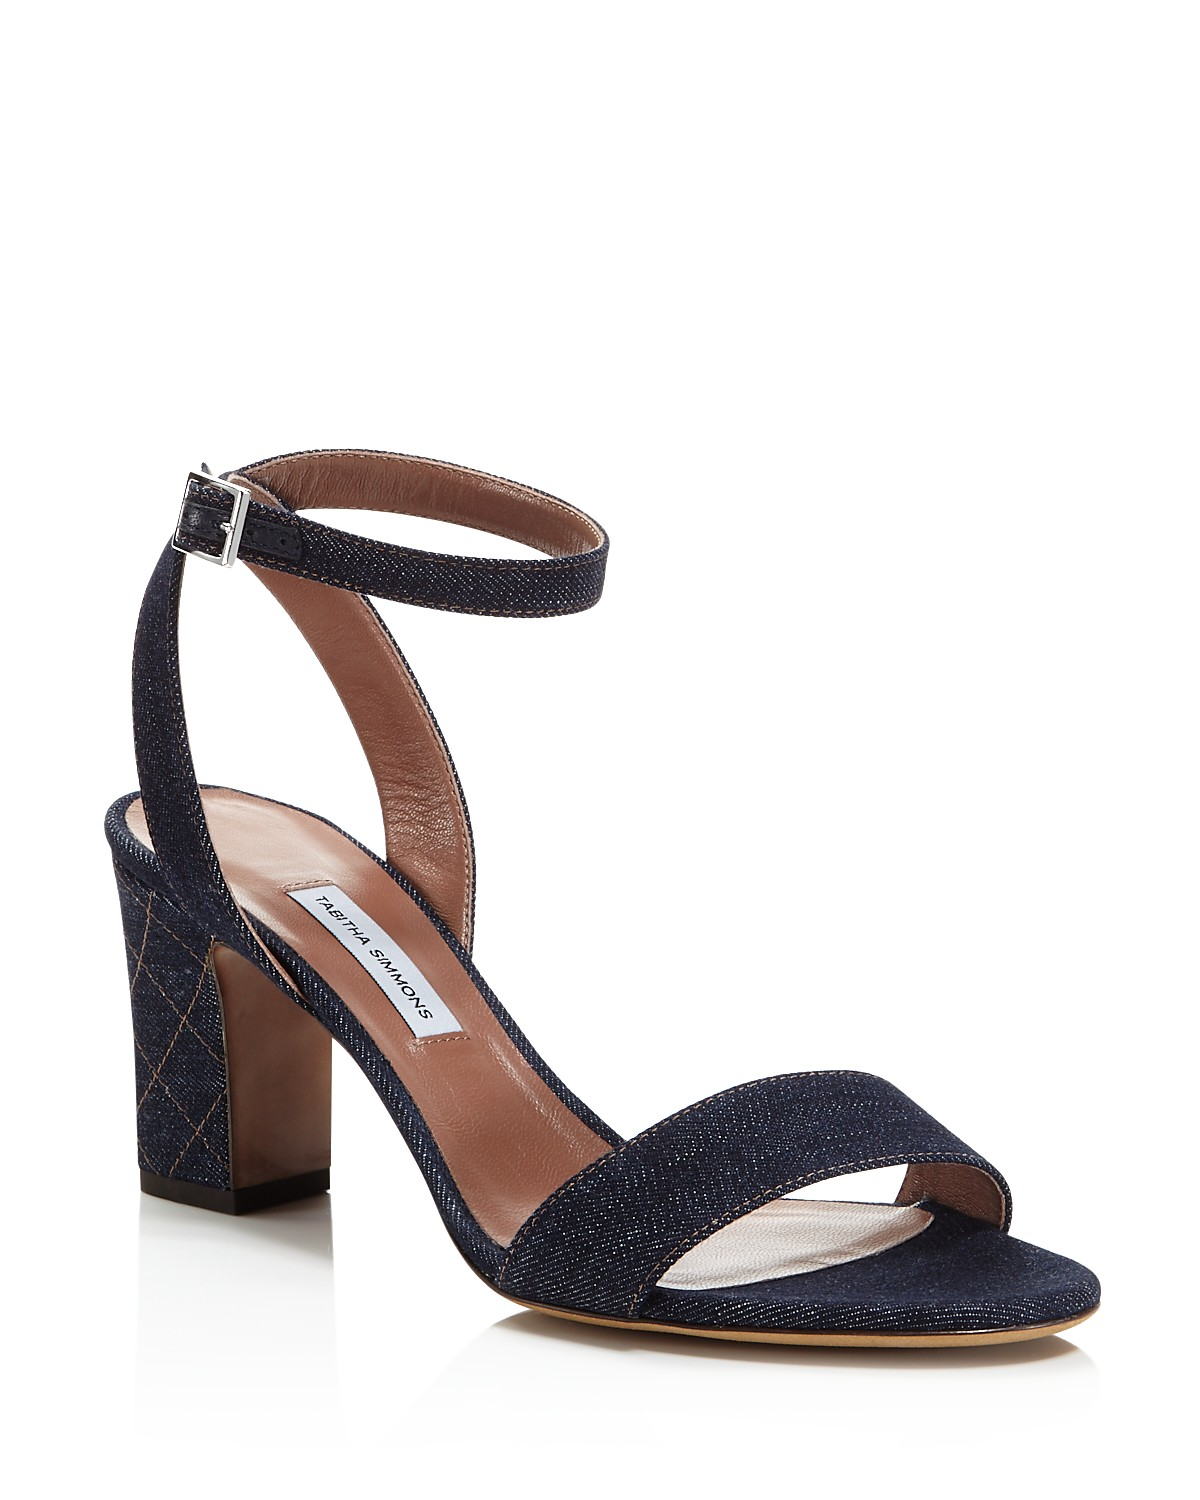 Tabitha Simmons Women's Leticia Denim Ankle Strap High-Heel Sandals - 100% Exclusive HdgY9HFp